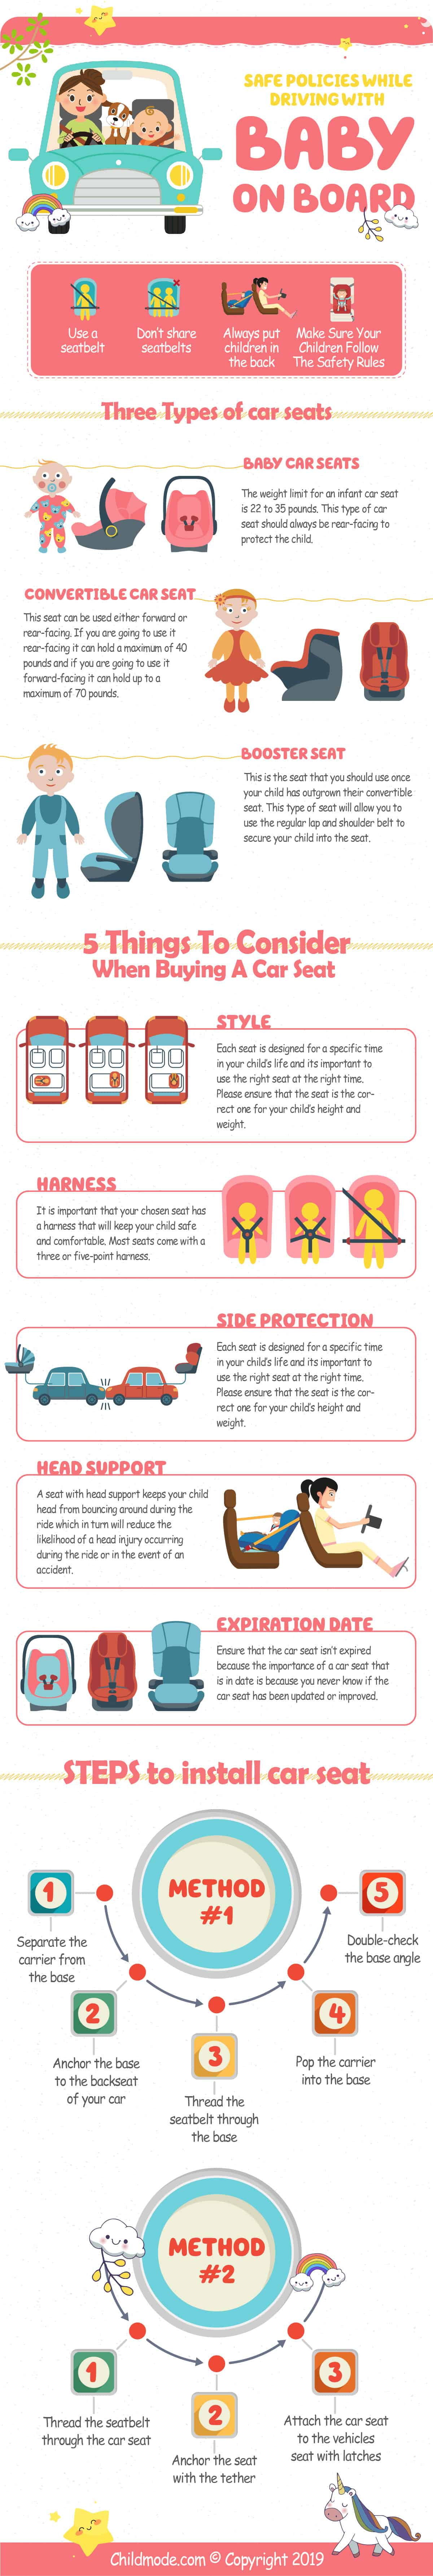 How To Be Safe With Your Baby On Car